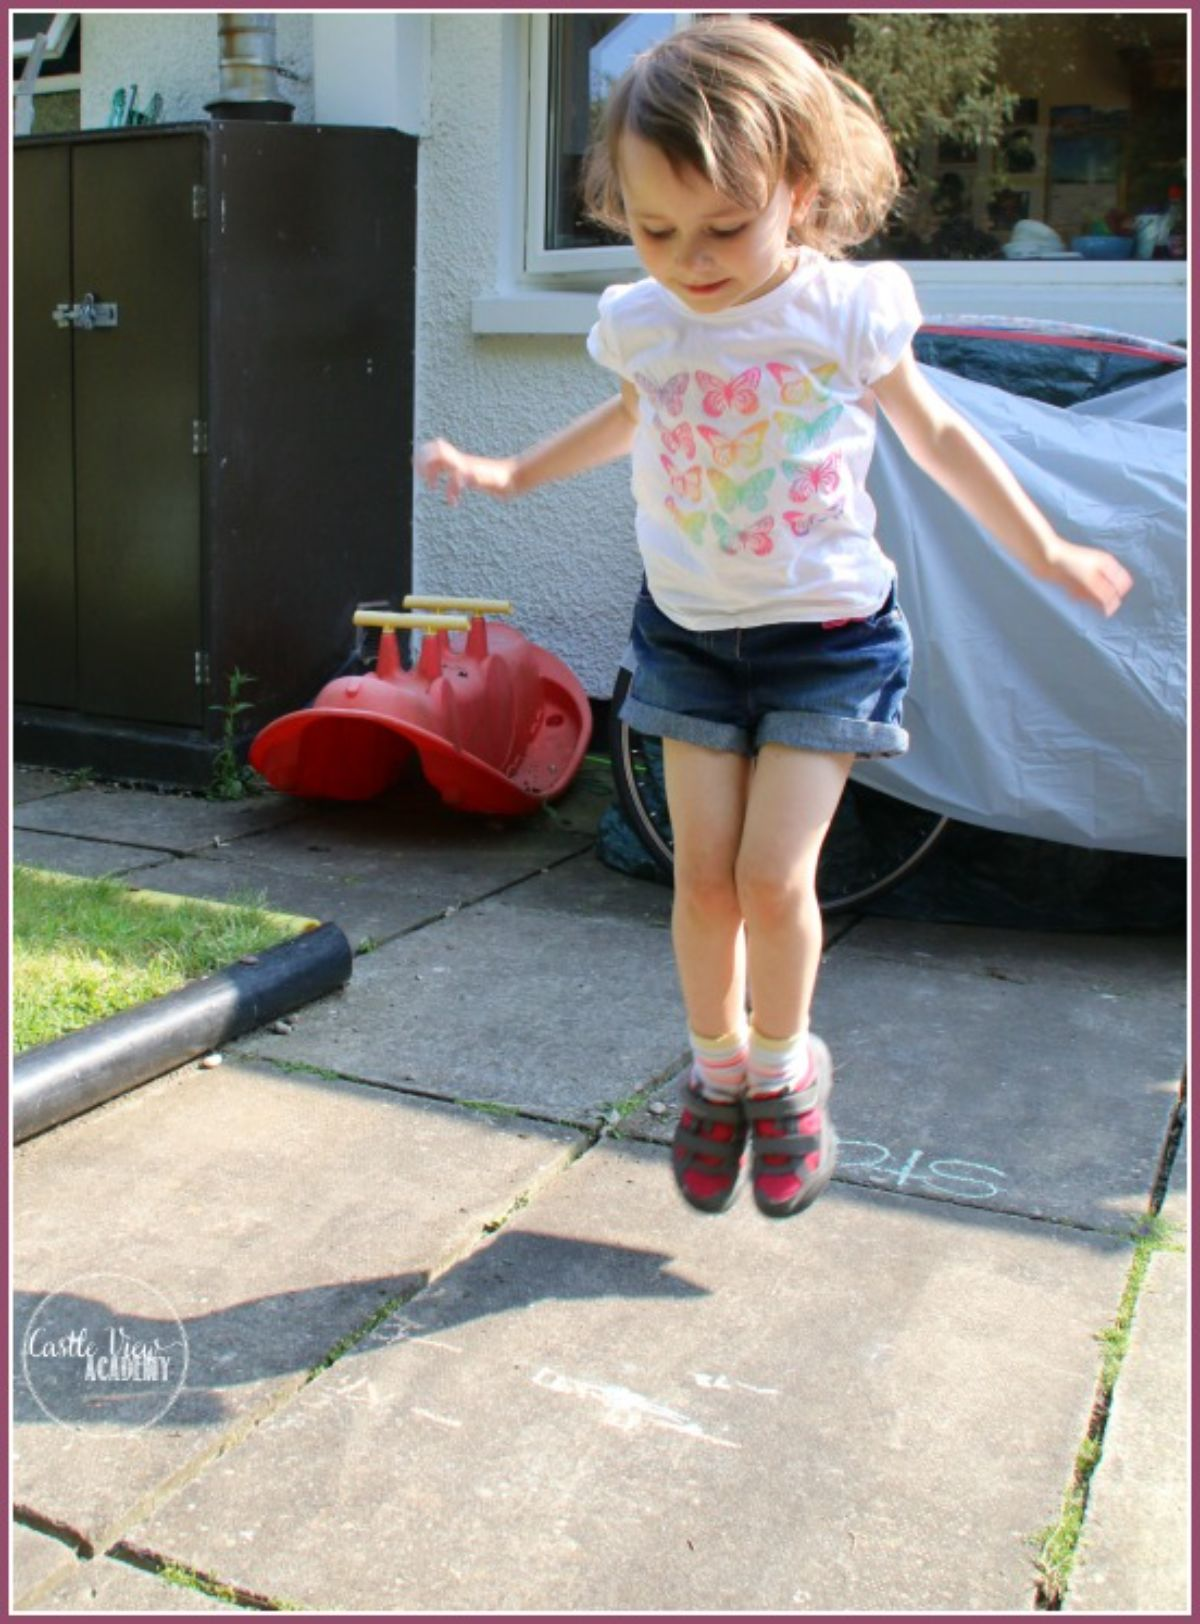 a girl jumps in the air in a yard